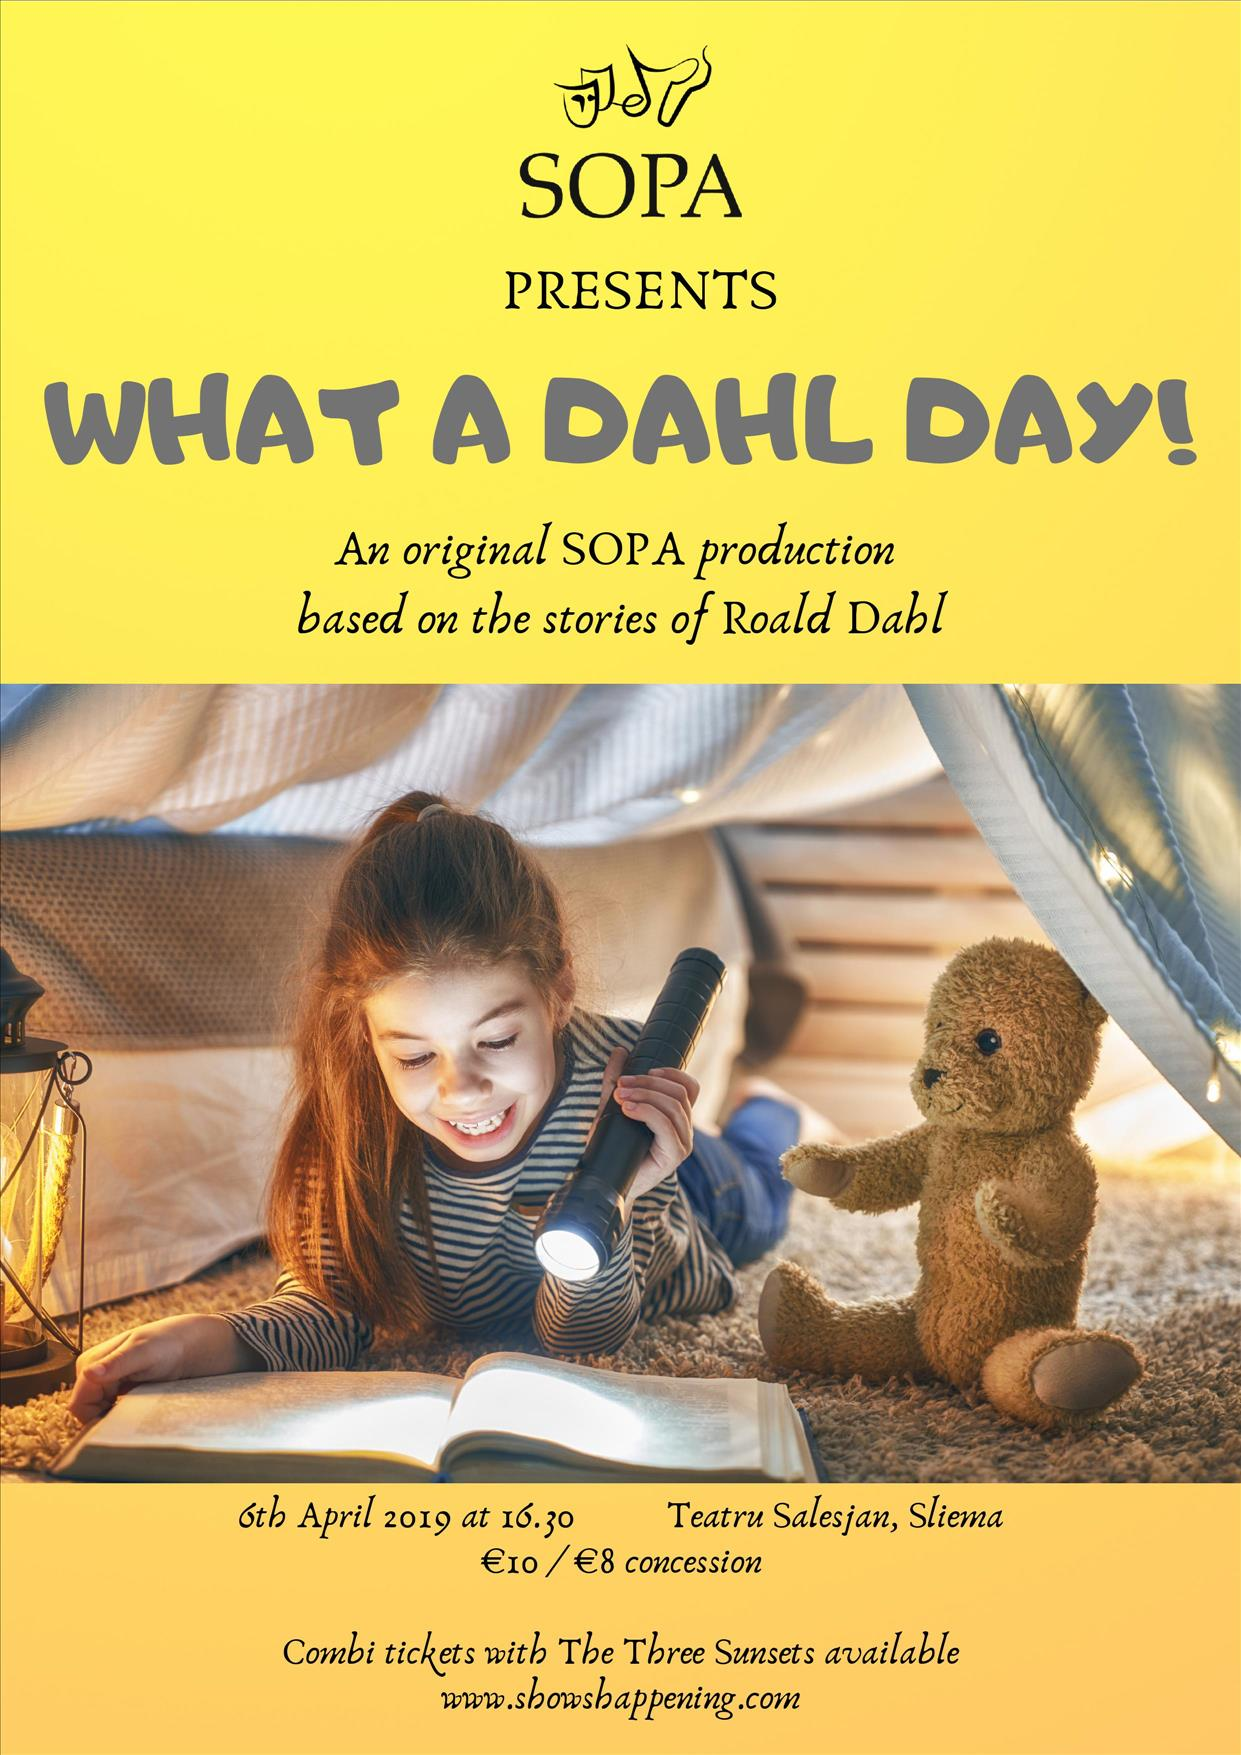 What A Dahl Day! flyer